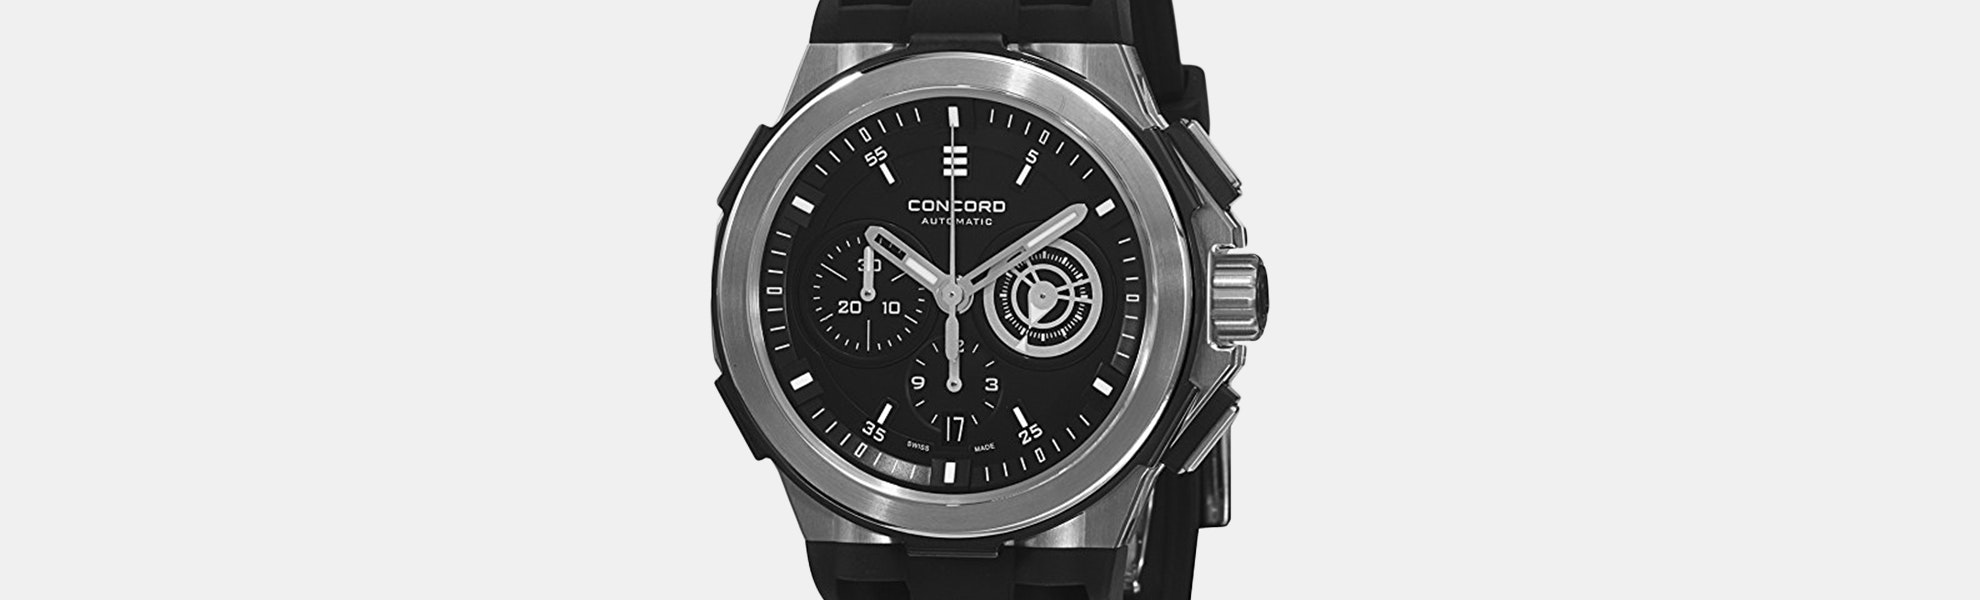 Concord C2 Chronograph Automatic Watch